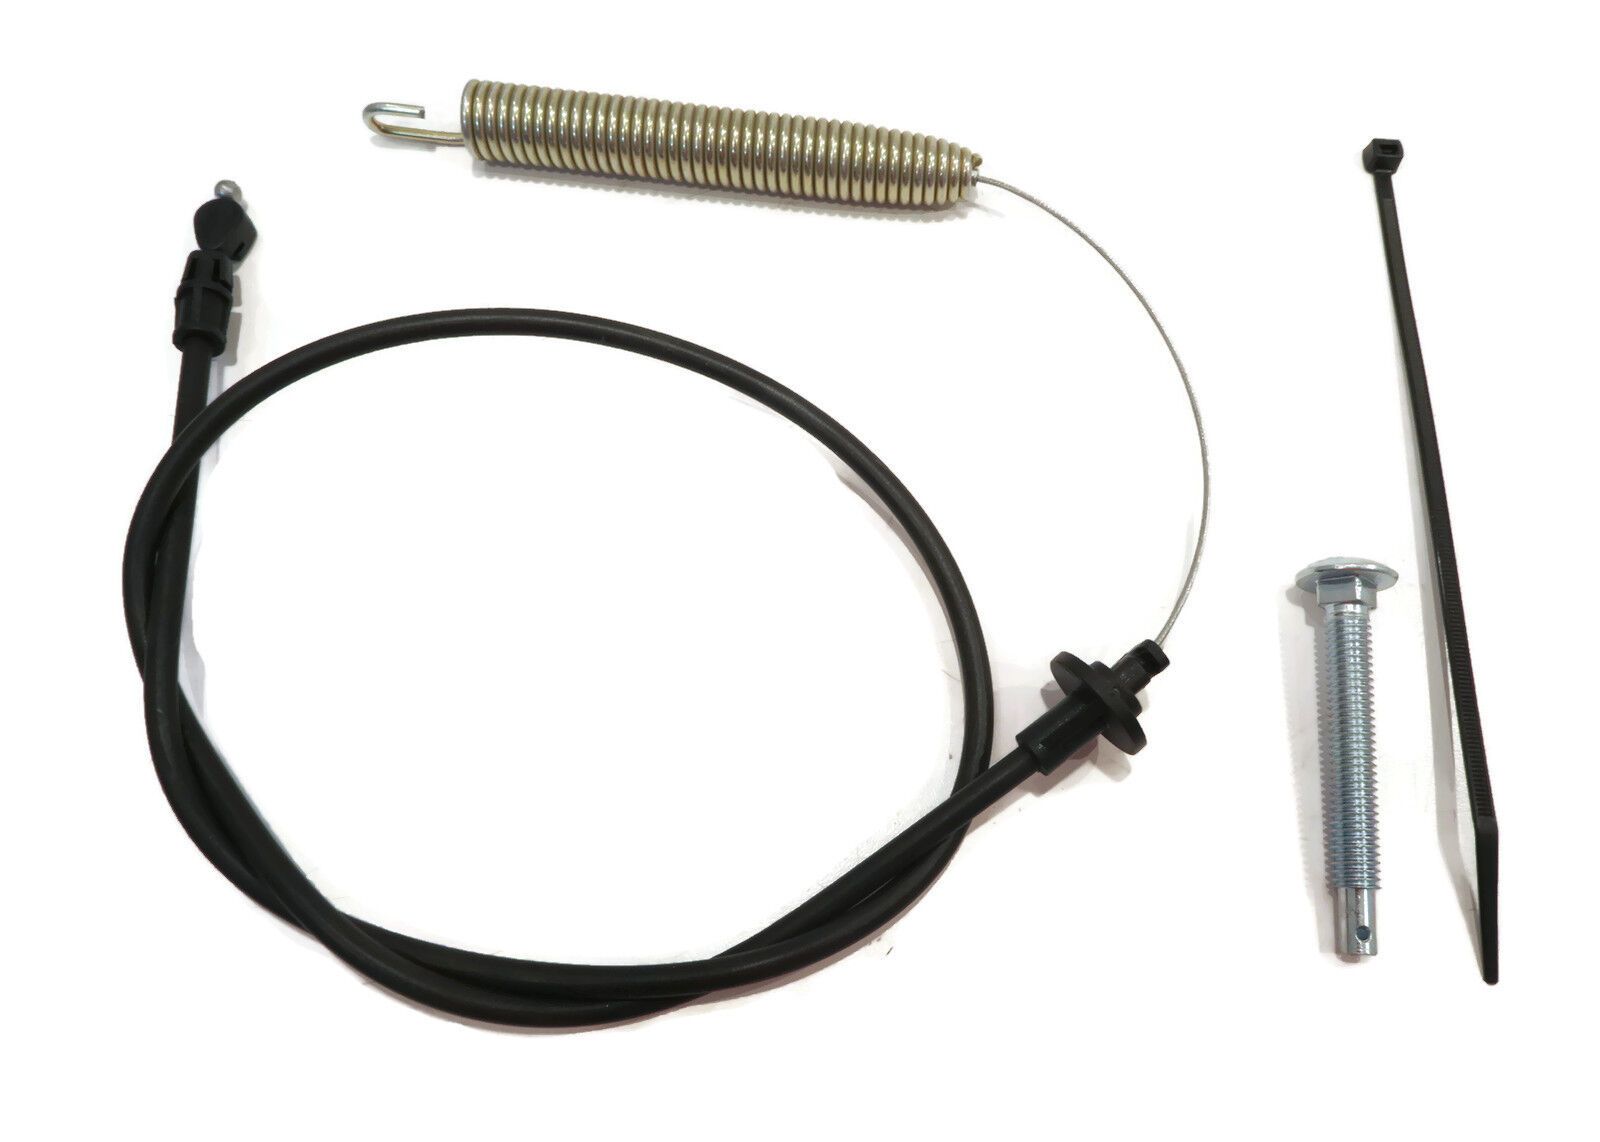 New DECK ENGAGEMENT CLUTCH CABLE KIT fits AYP Husqvarna